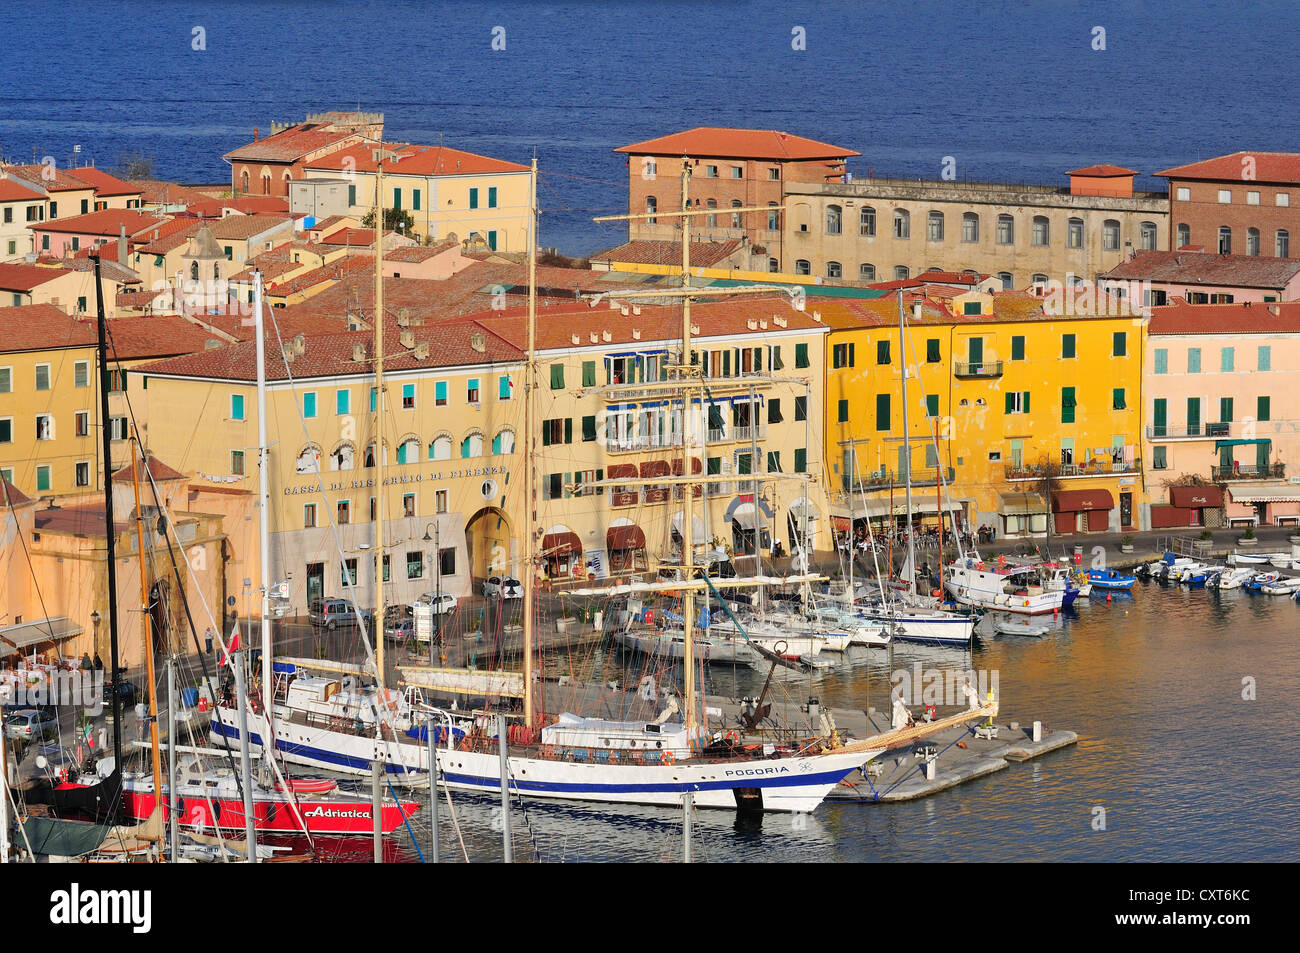 Polish sailing ship in the port of Portoferraio, Elba, Tuscany, Italy, Europe - Stock Image